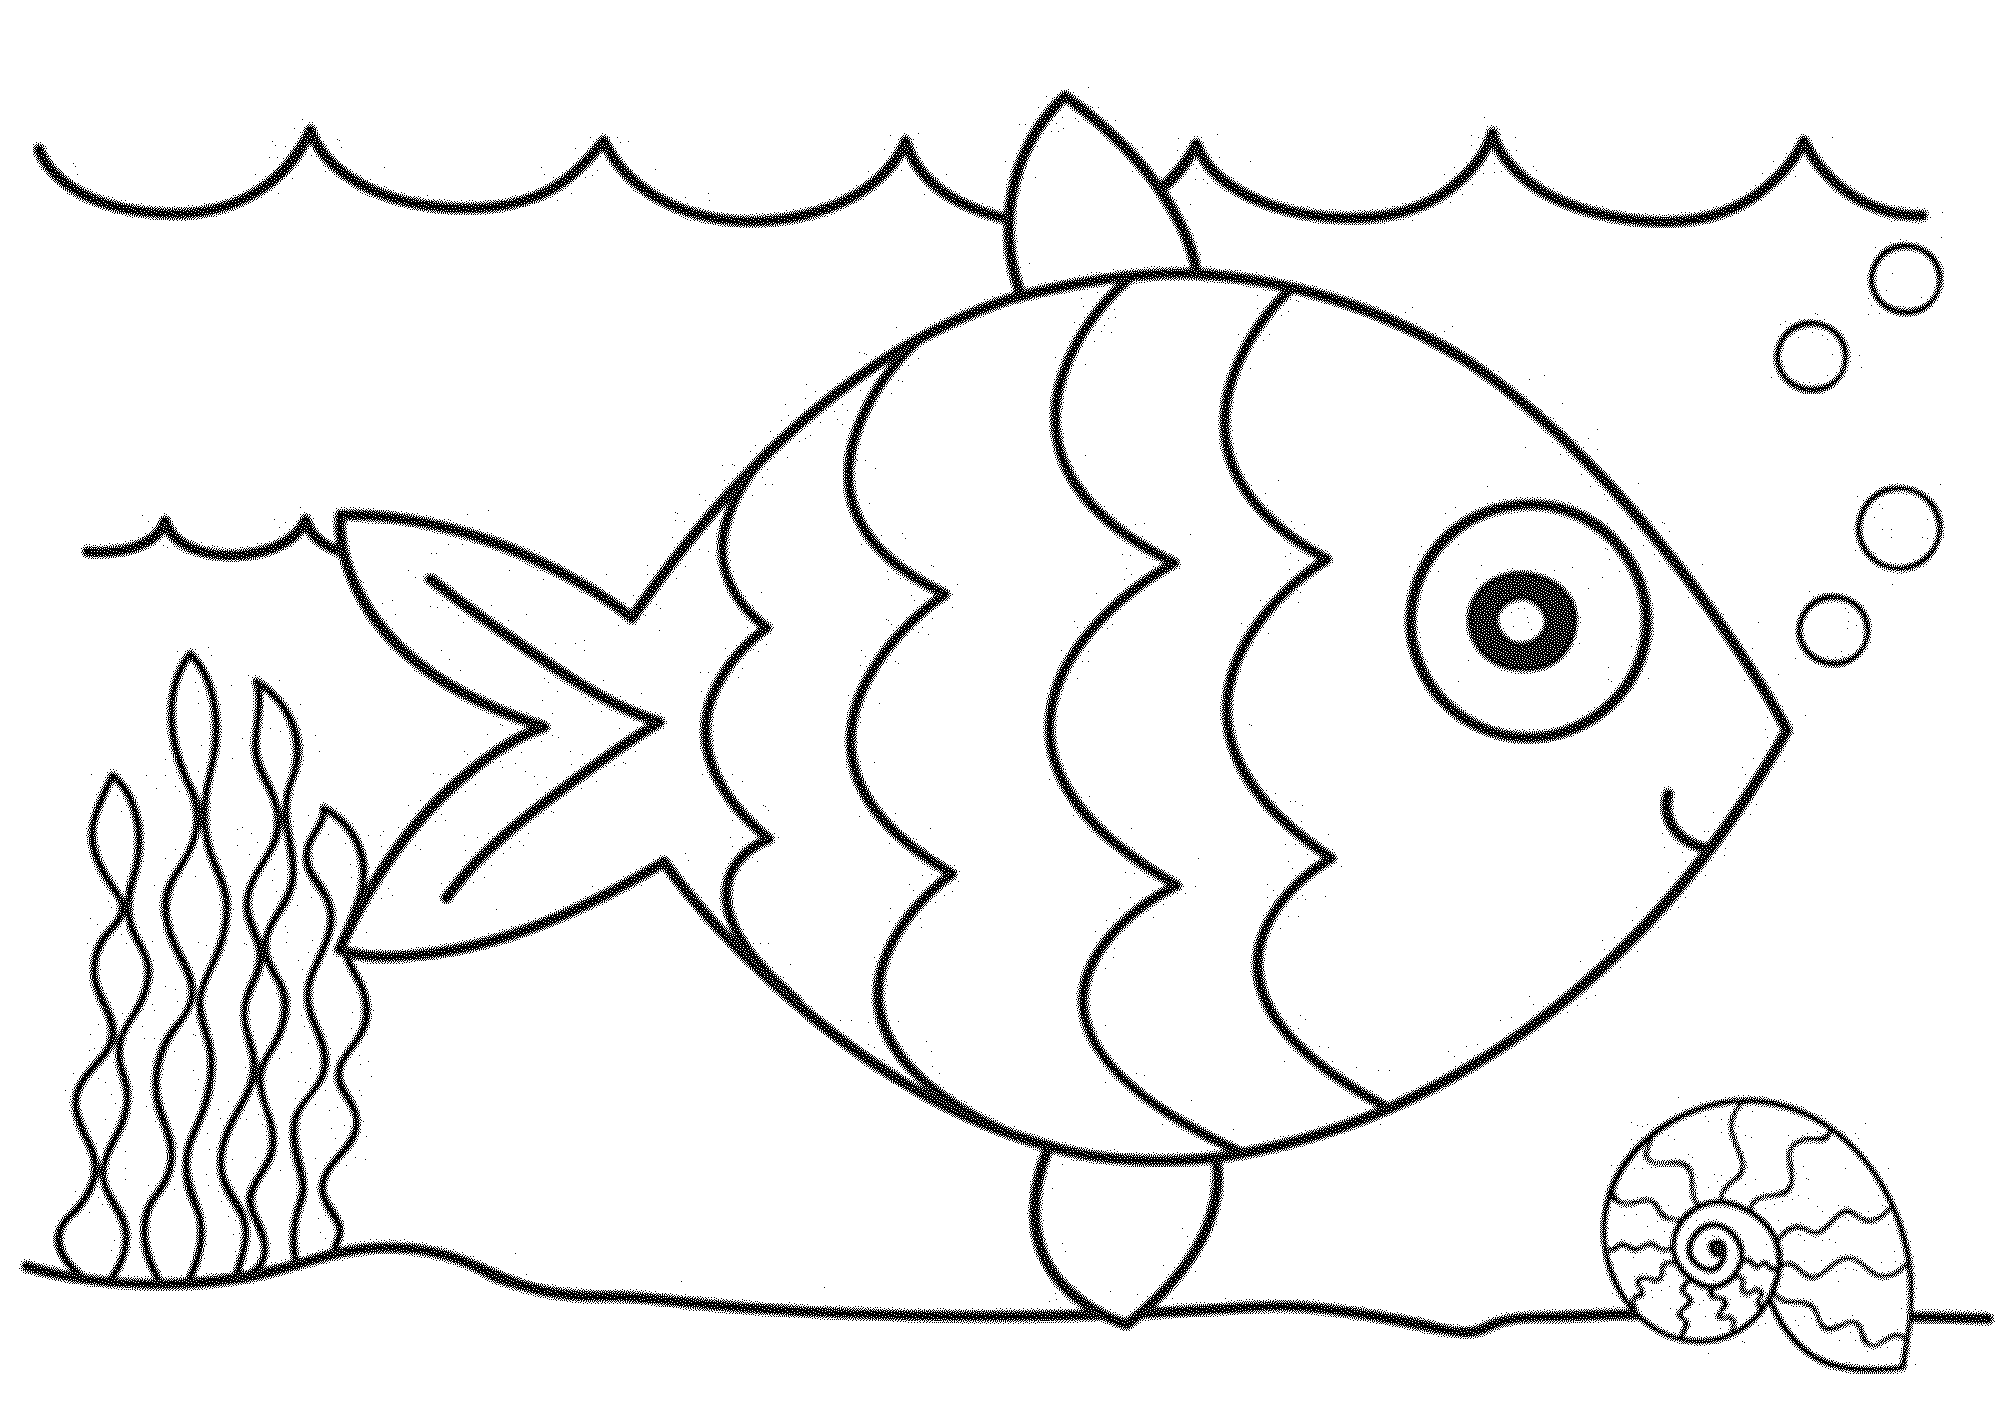 under the sea coloring pages pdf under the sea colouring sheets sb3985 sparklebox sea under the pages coloring pdf